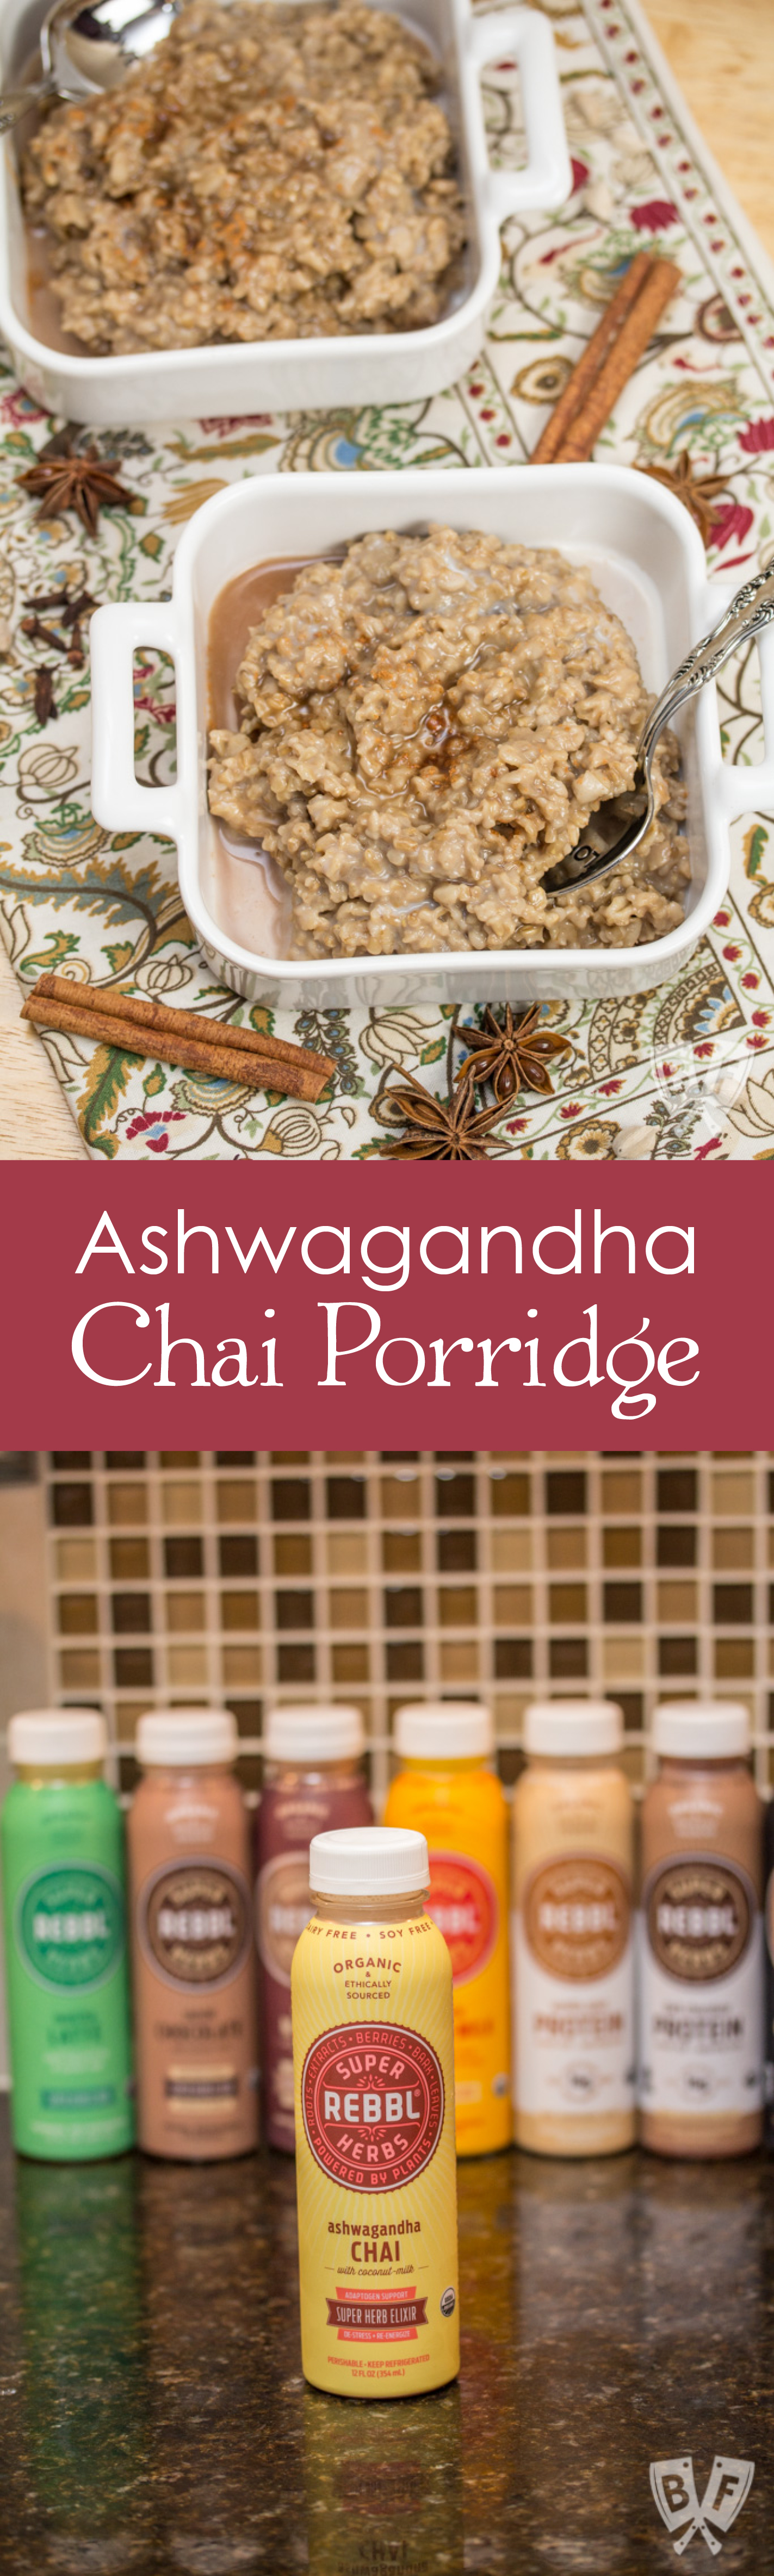 Ashwagandha Chai Porridge: Take your morning oats to the next level with a piping hot bowl of this super herb-infused breakfast porridge. Easy & ready in 25 minutes! #REBBLTribe #ad